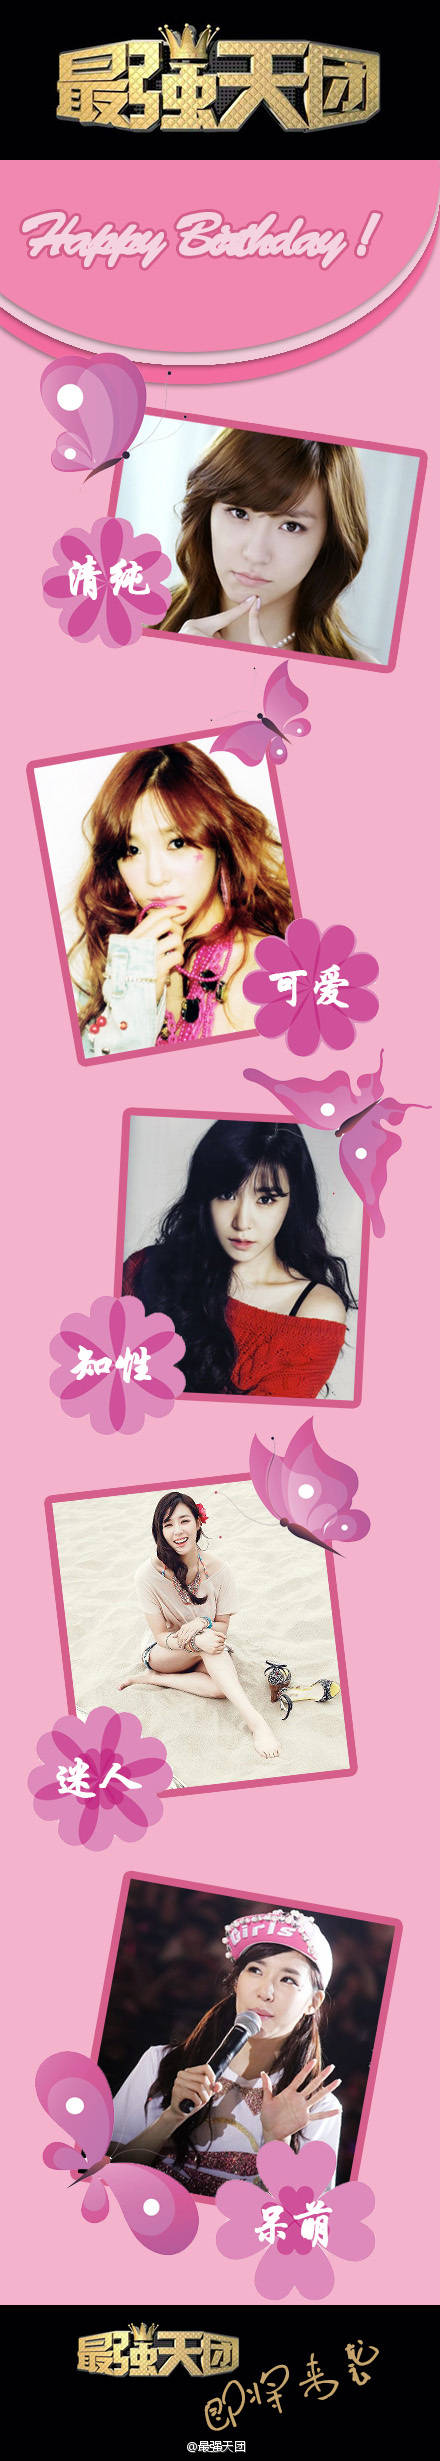 [140801] Girls' Generation (SNSD) New Picture for Strongest Group (最强天团) via 最强天团's Weibo